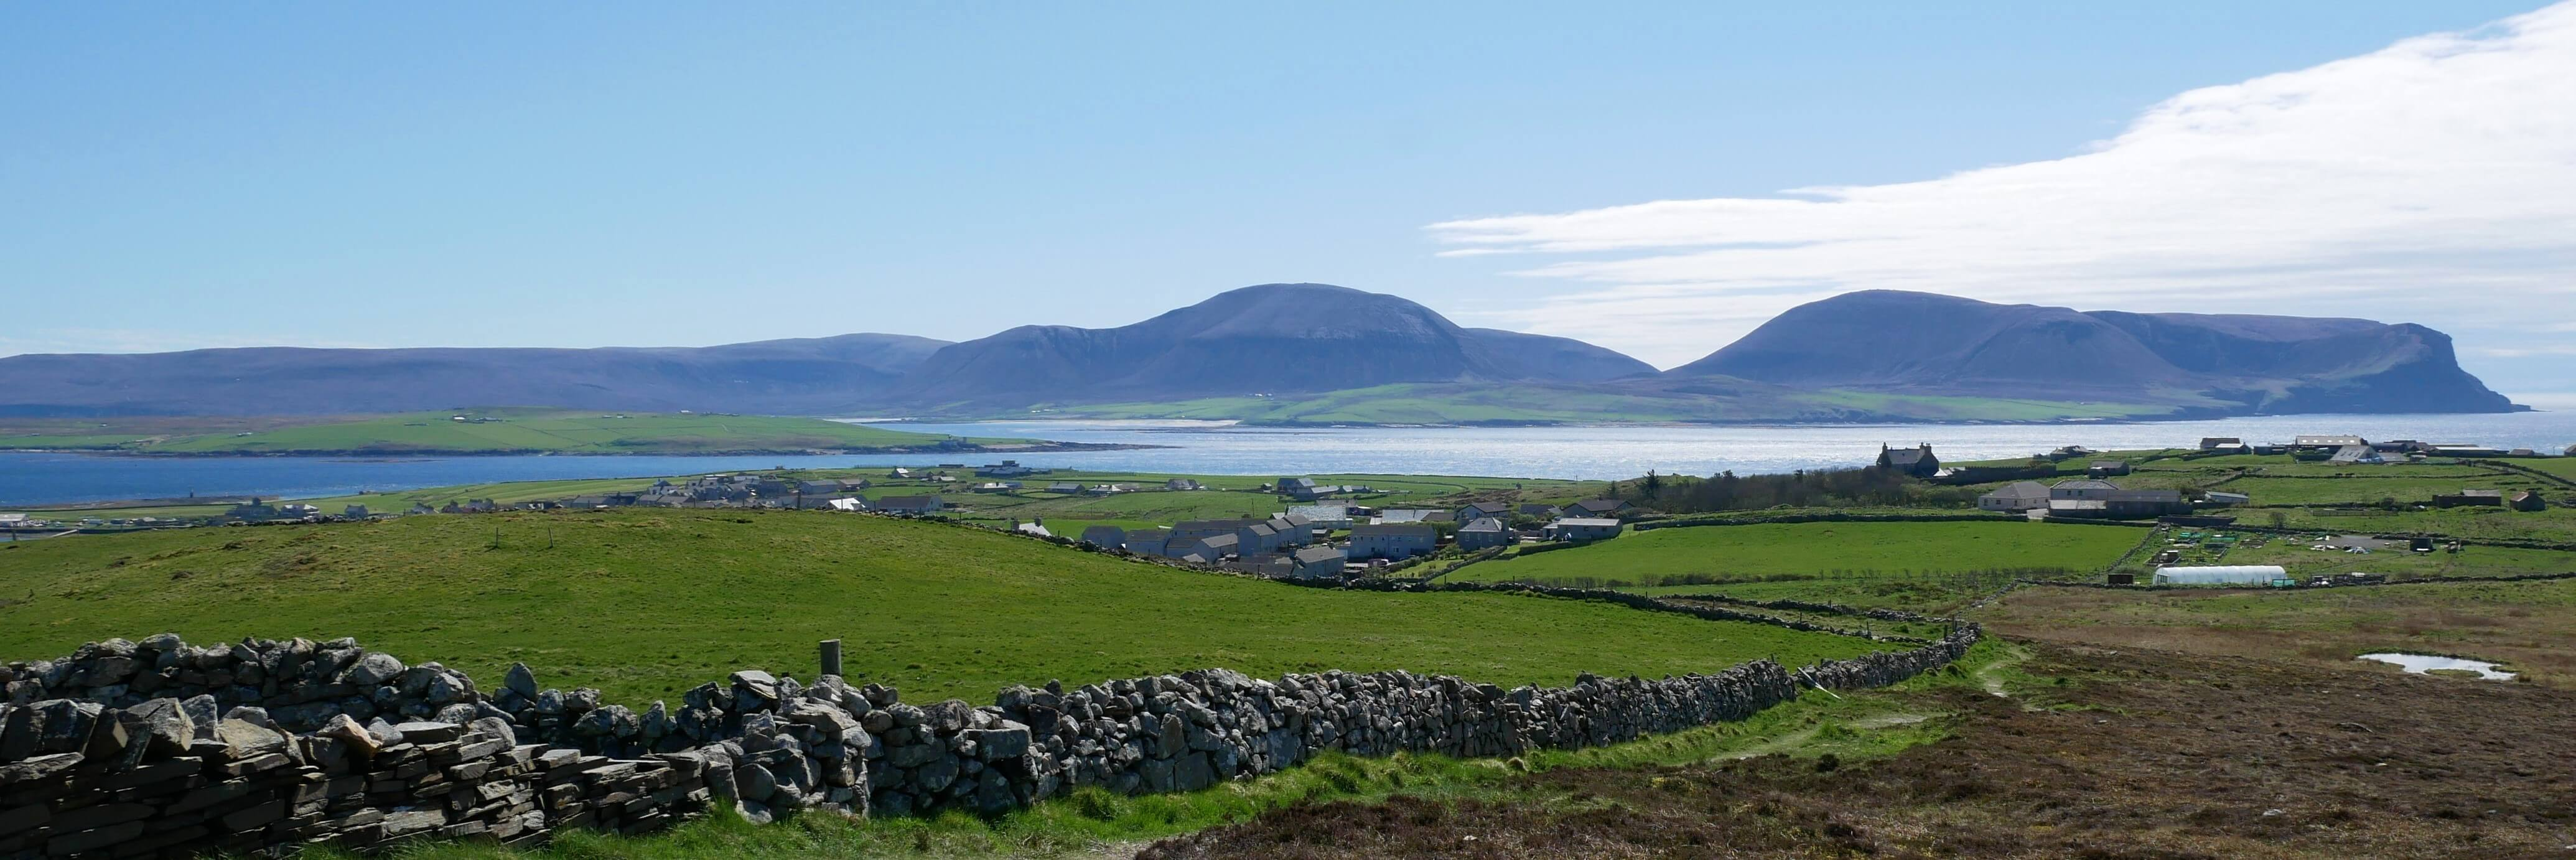 View from Brinkie's Brae, Stromness, Orkney Islands, Scotland